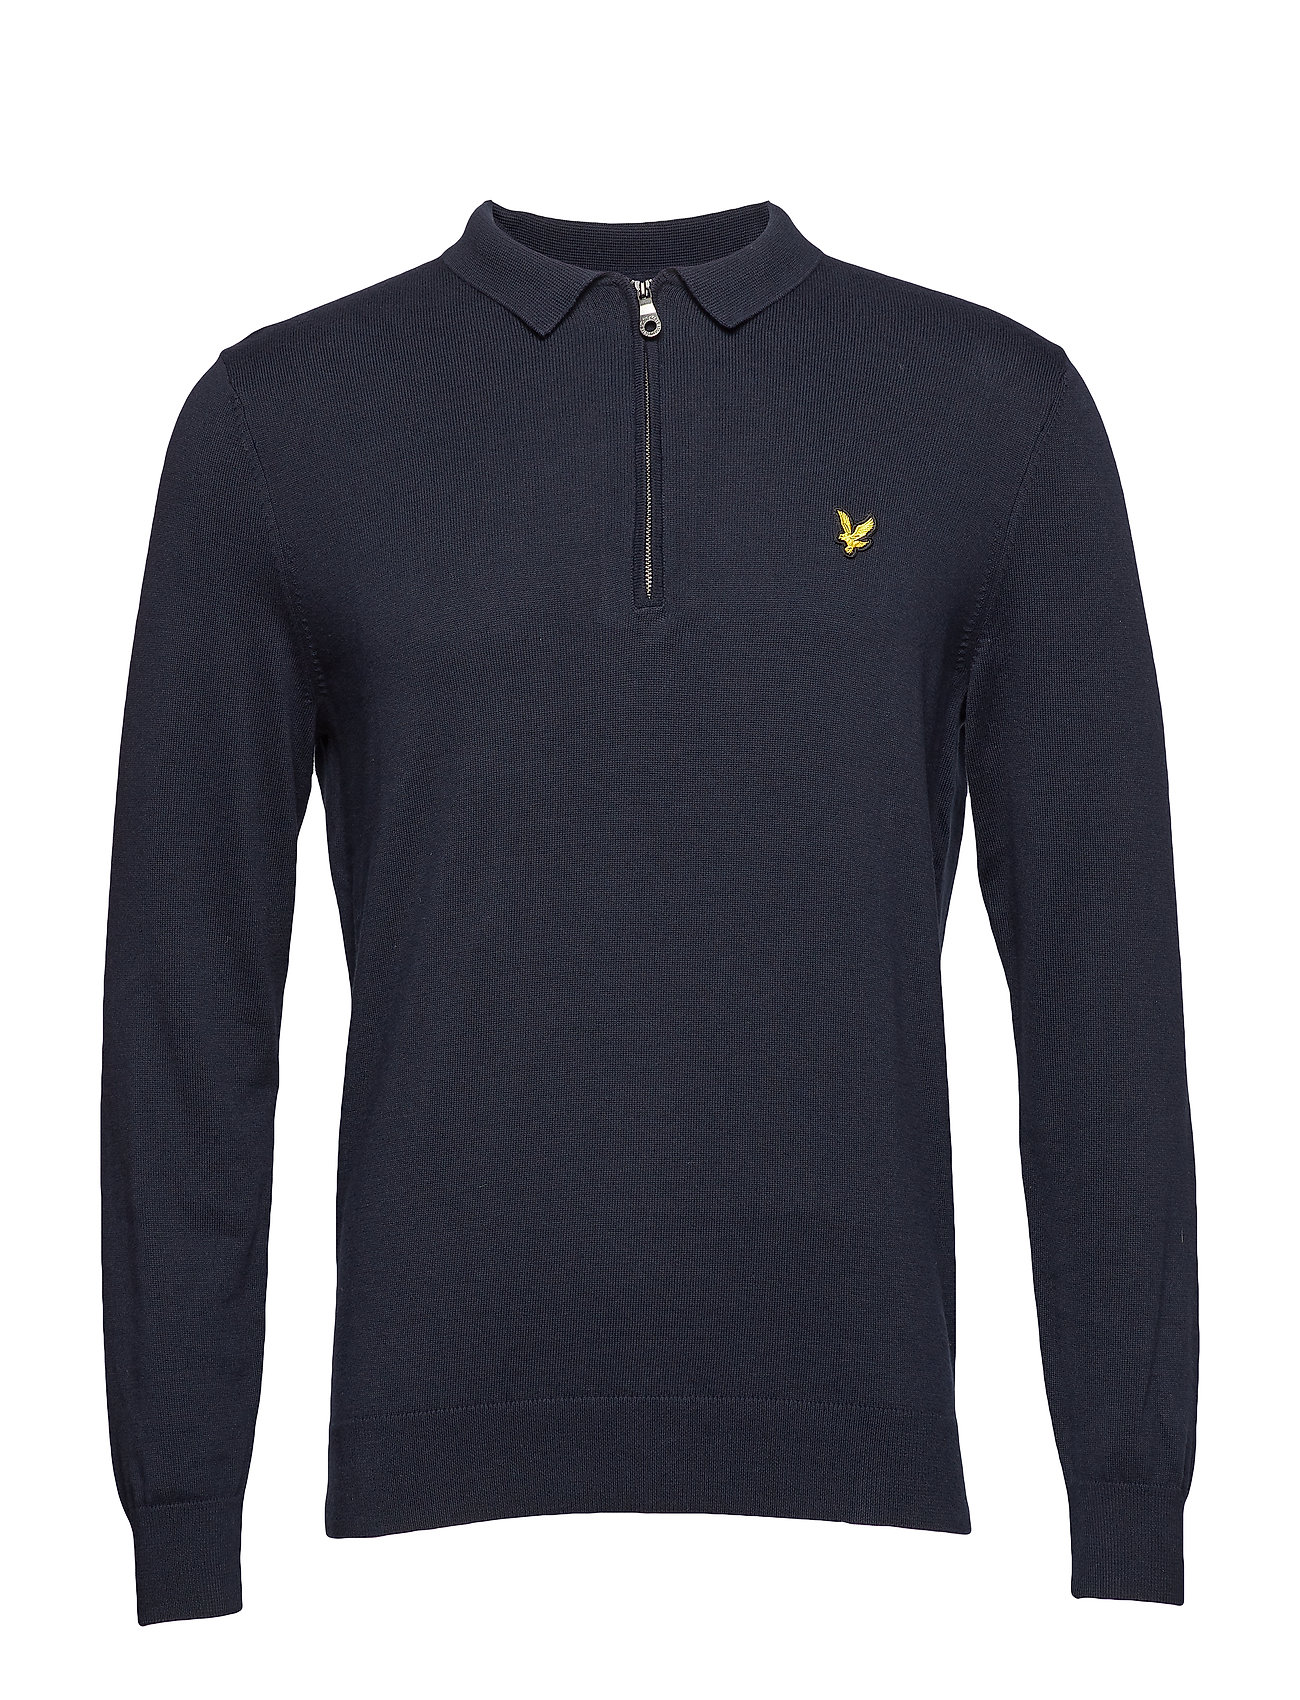 Image of Collared 1/4 Zip Sweatshirt Langærmet Trøje Blå LYLE & SCOTT (3101137181)